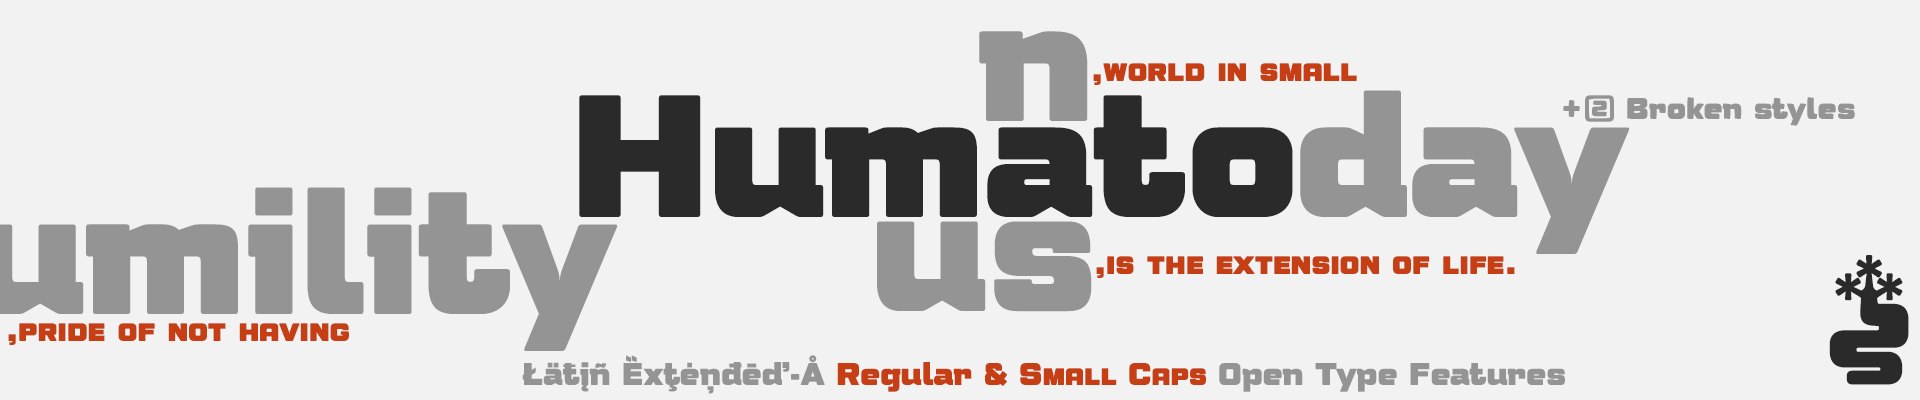 Humato Typefaces - Latin Extended-A - Open Type Features